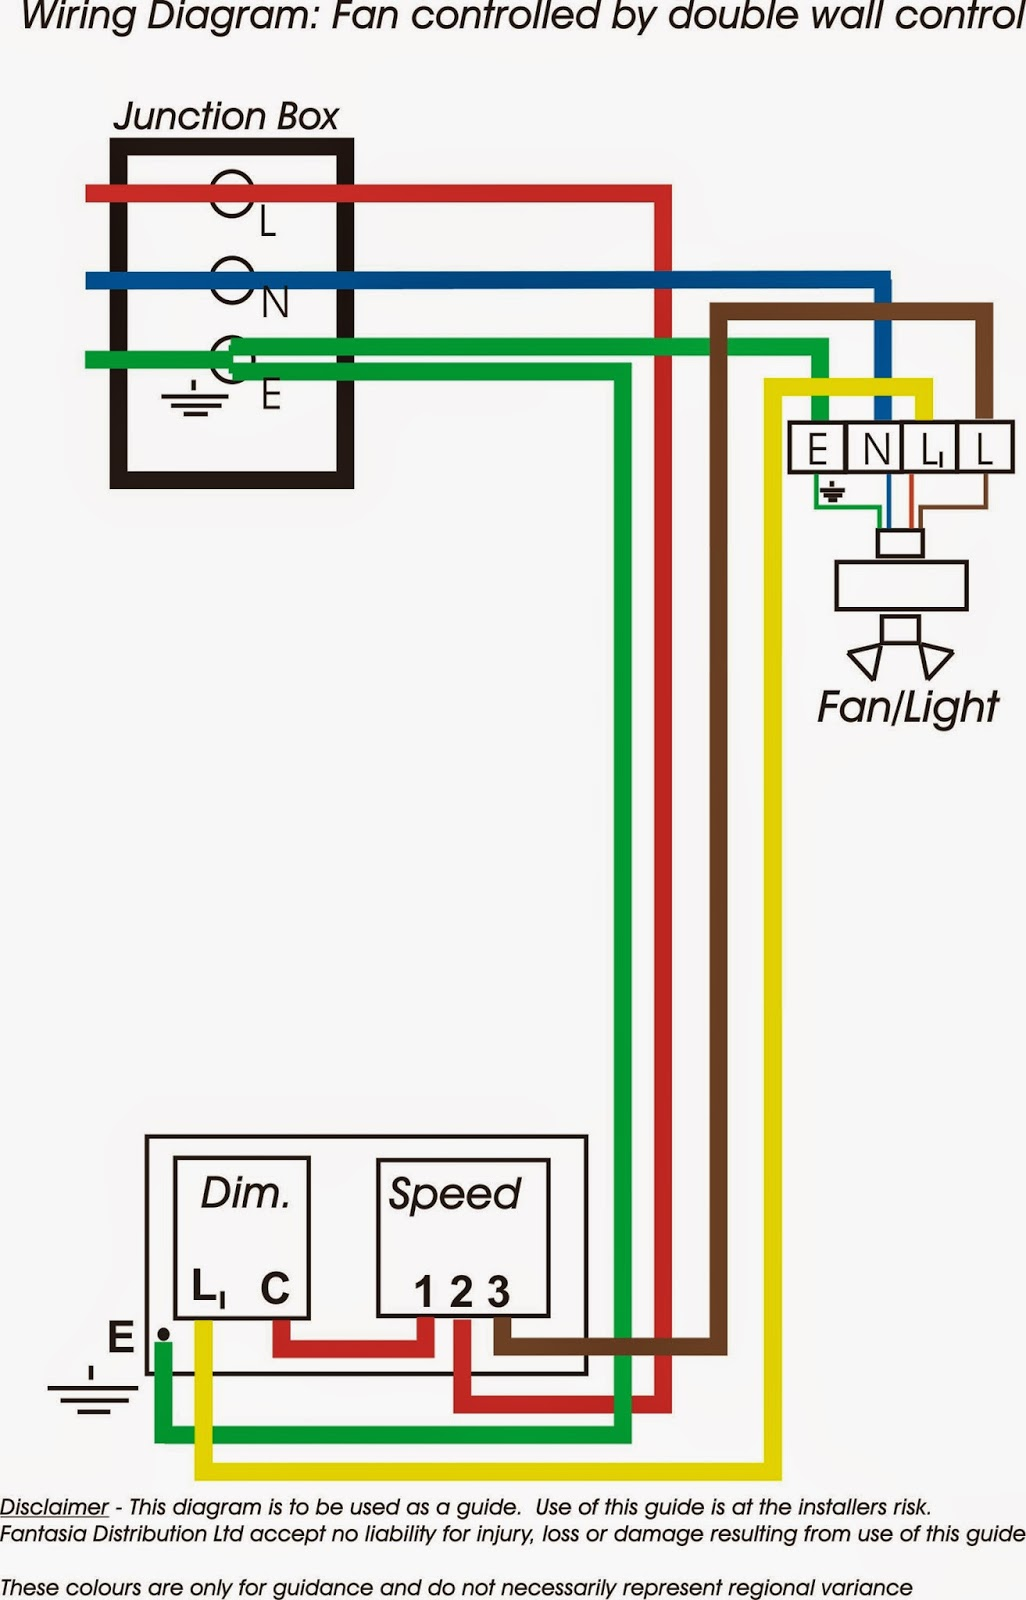 Wiring Connection Diagram 2003 Ford Explorer Cooling System Electric Work